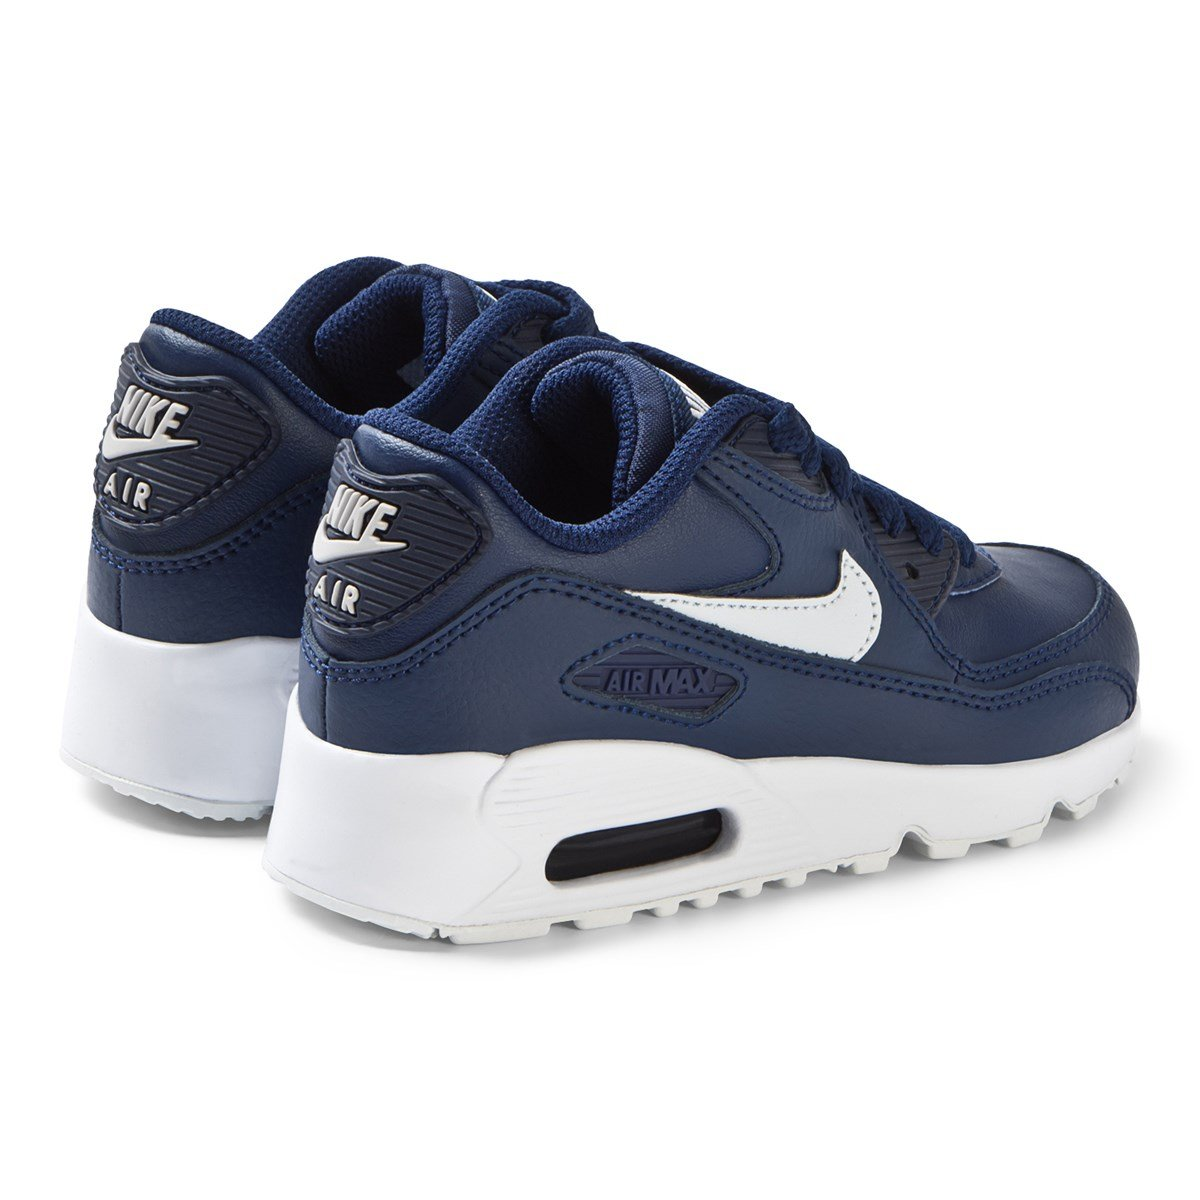 72551cd1251fc Nike Blue Nike Air Max 90 Leather Trainers